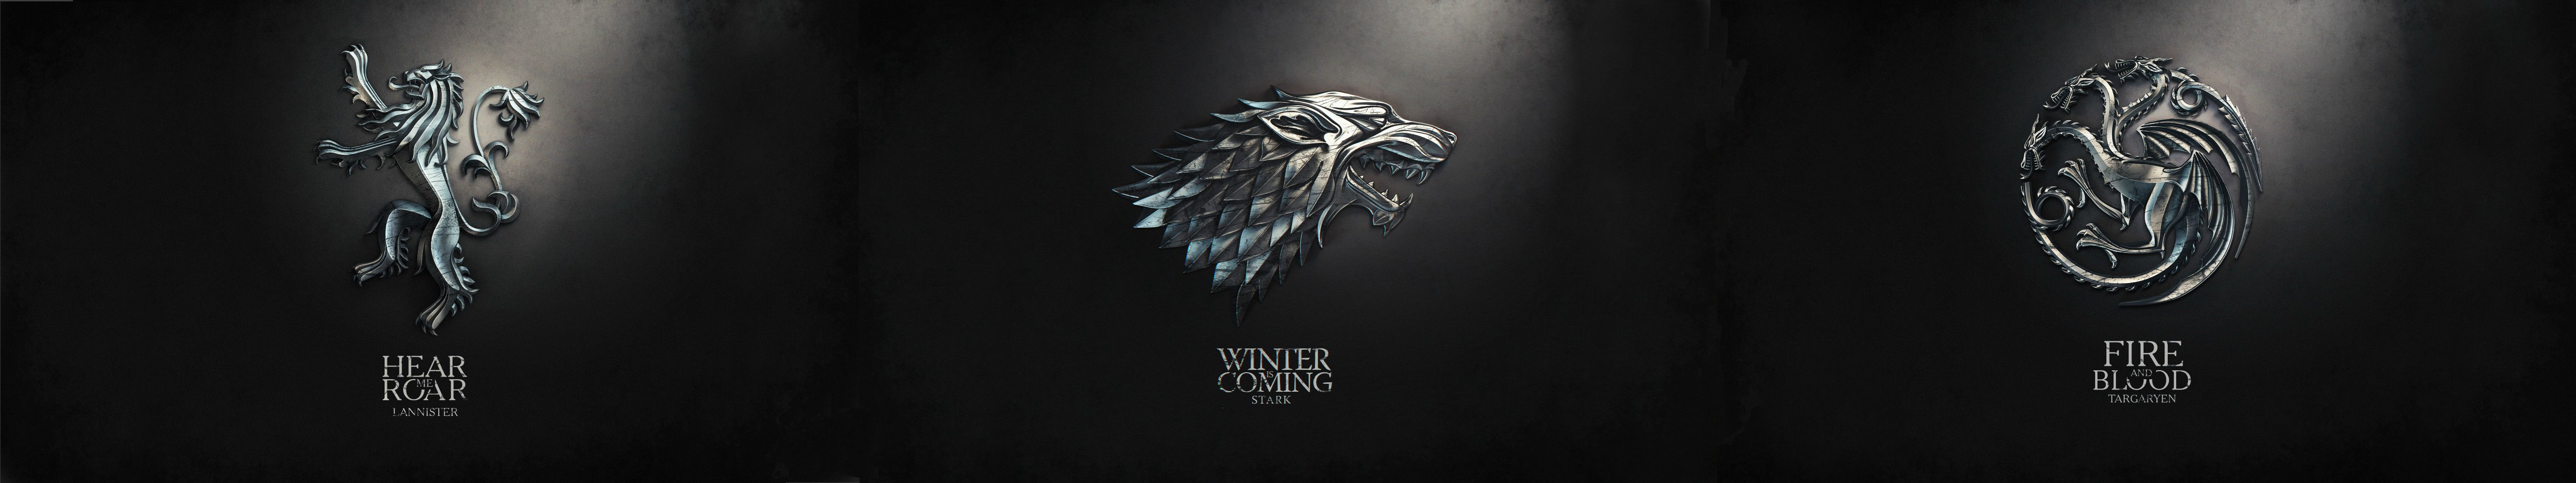 Game Of Thrones Wallpapers Imgur